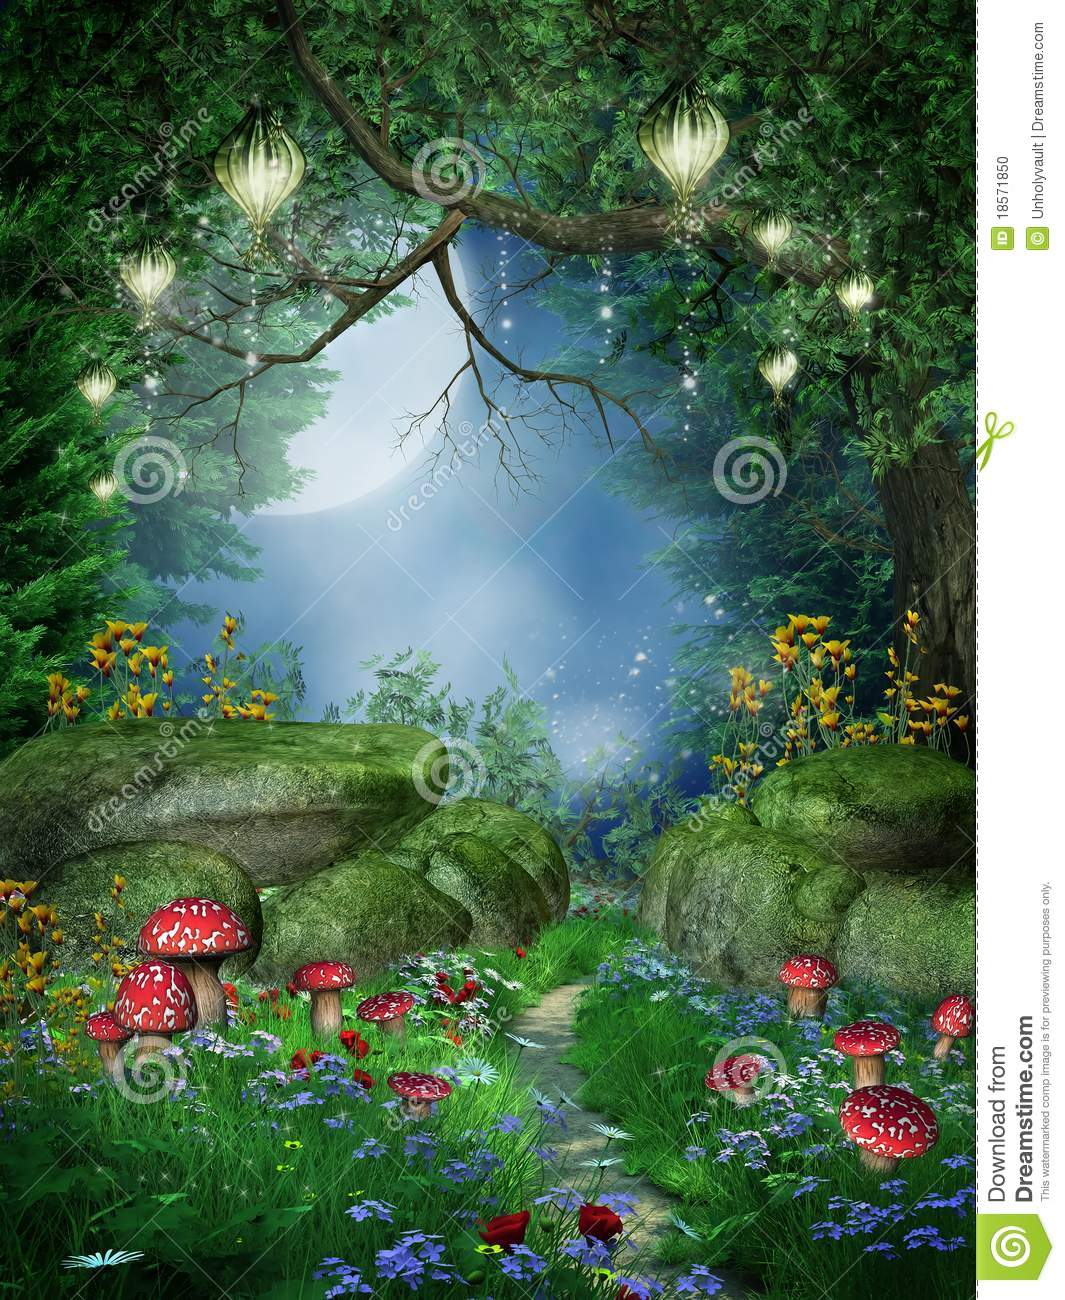 3d Mushroom Garden Hd Wallpaper Download Enchanted Forest With Lanterns Stock Illustration